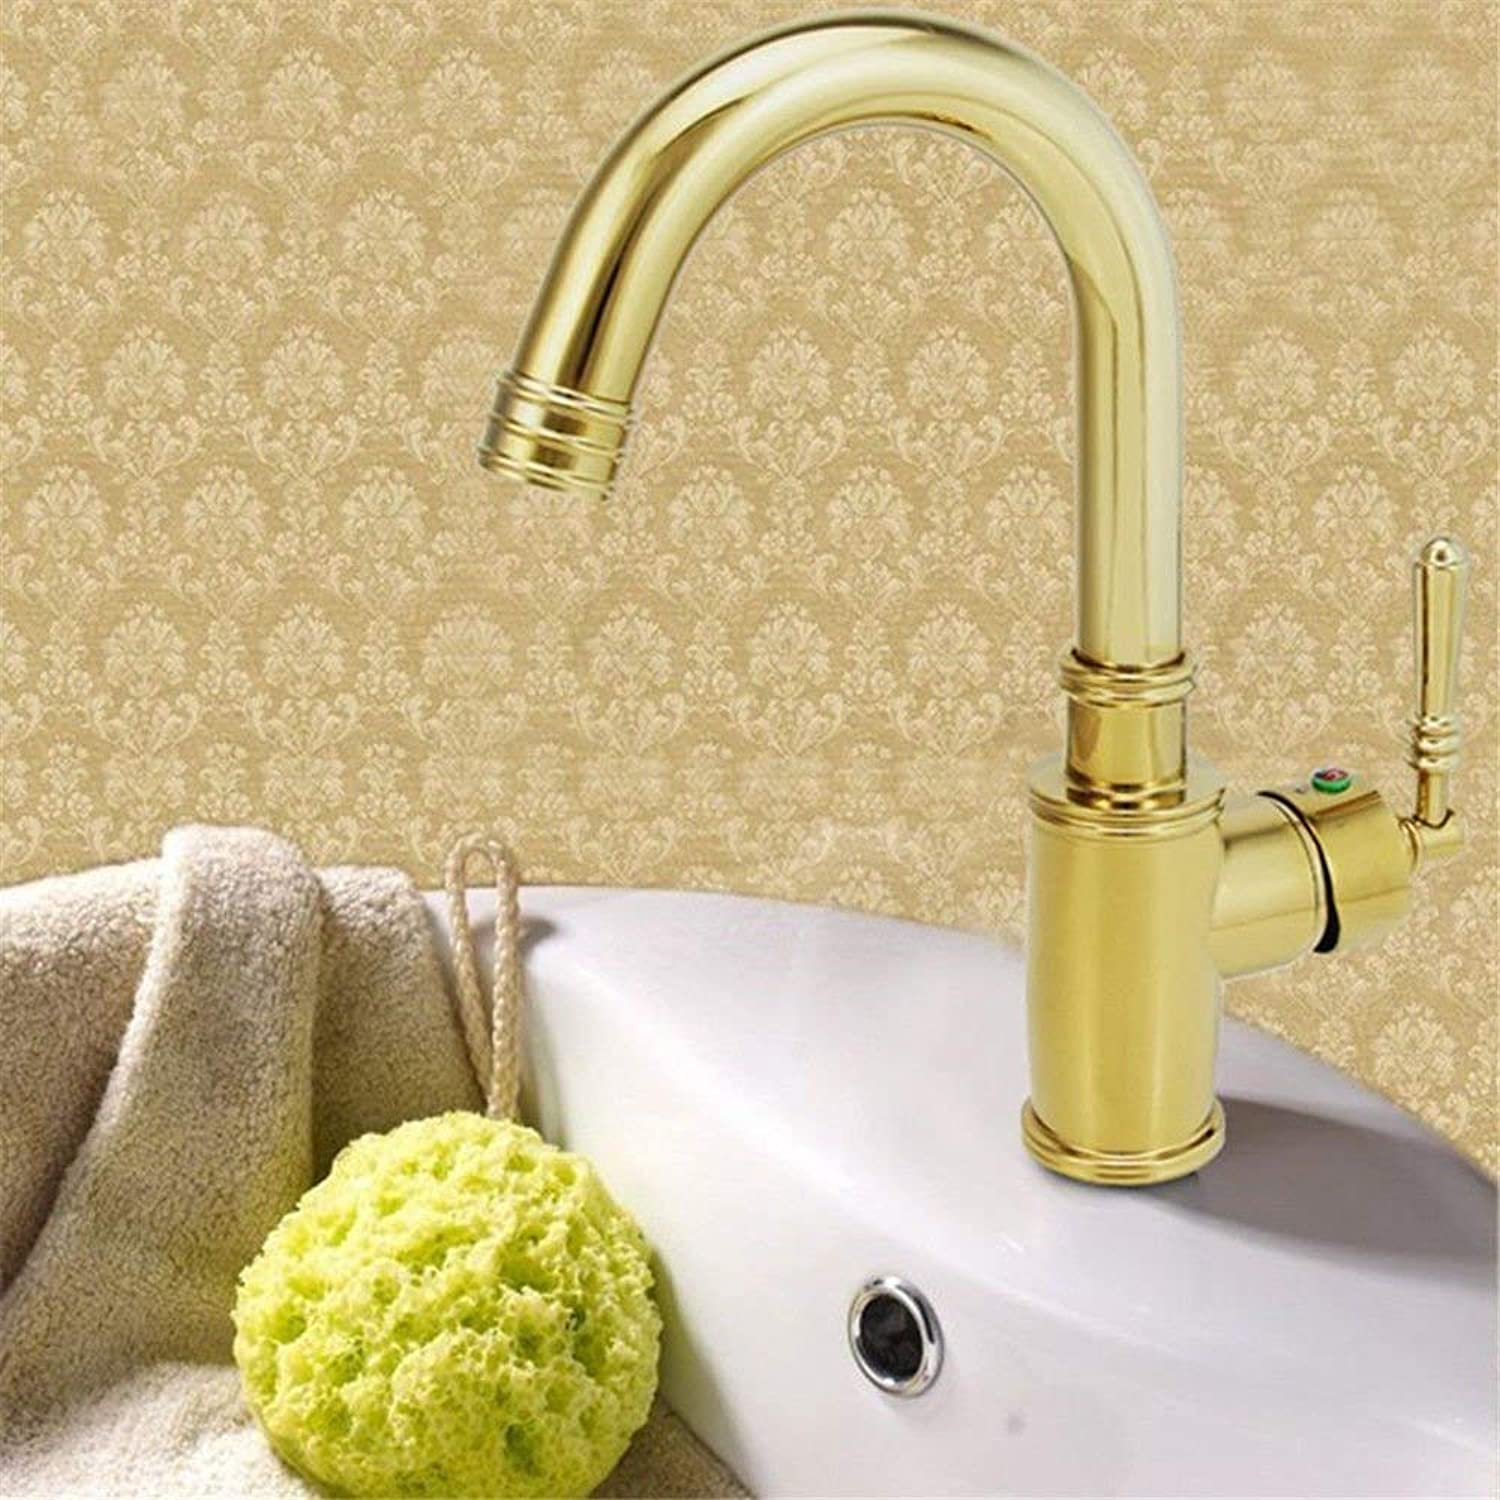 Oudan Kitchen tap hot and cold sink mixer sink faucet swivel spout gold kitchen sink tap (color   -, Size   -)